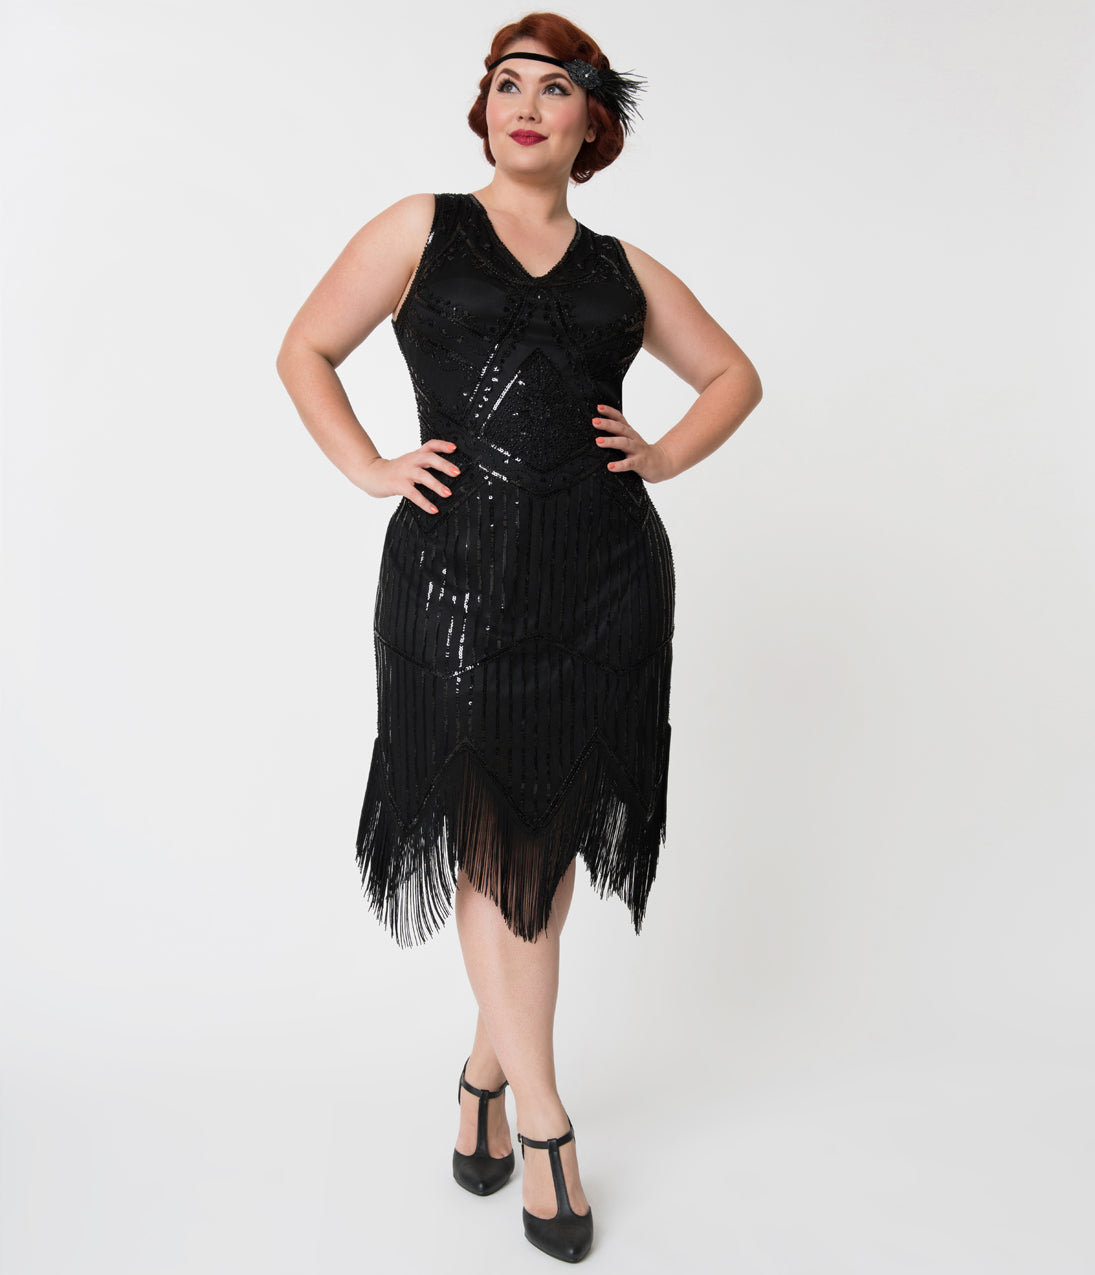 20s Dresses | 1920s Dresses for Sale Unique Vintage Plus Size 1920S Black Beaded Sequin Juliette Fringe Flapper Dress $68.00 AT vintagedancer.com